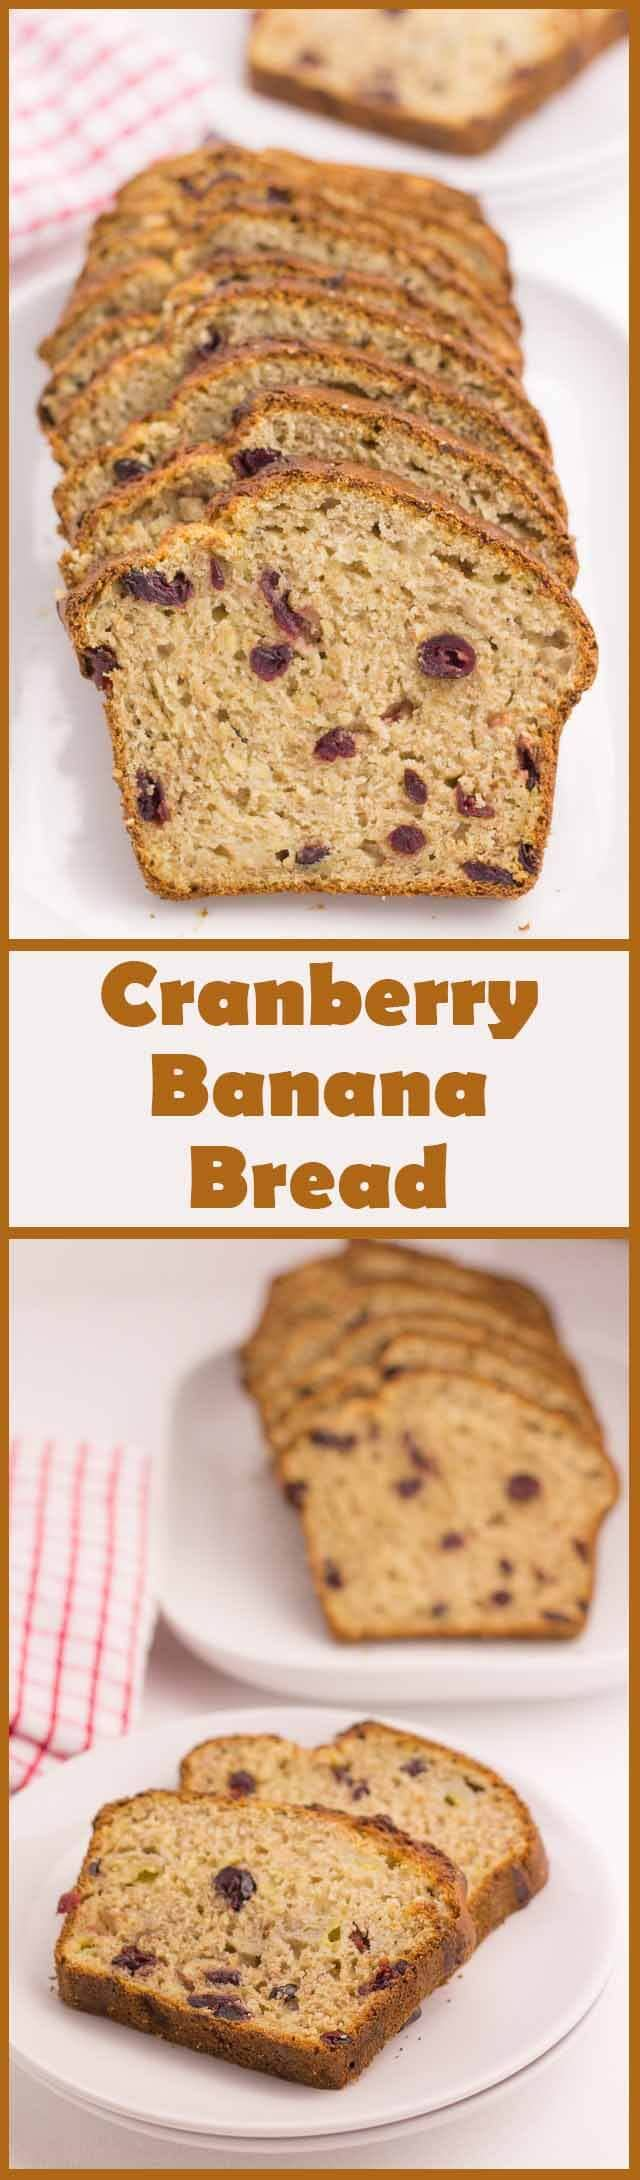 This deliciously moist cranberry banana bread is not only a fantastic healthy addition to your Christmas baking list but as you use dried cranberries here, as opposed to fresh cranberries, you can make it all year round!